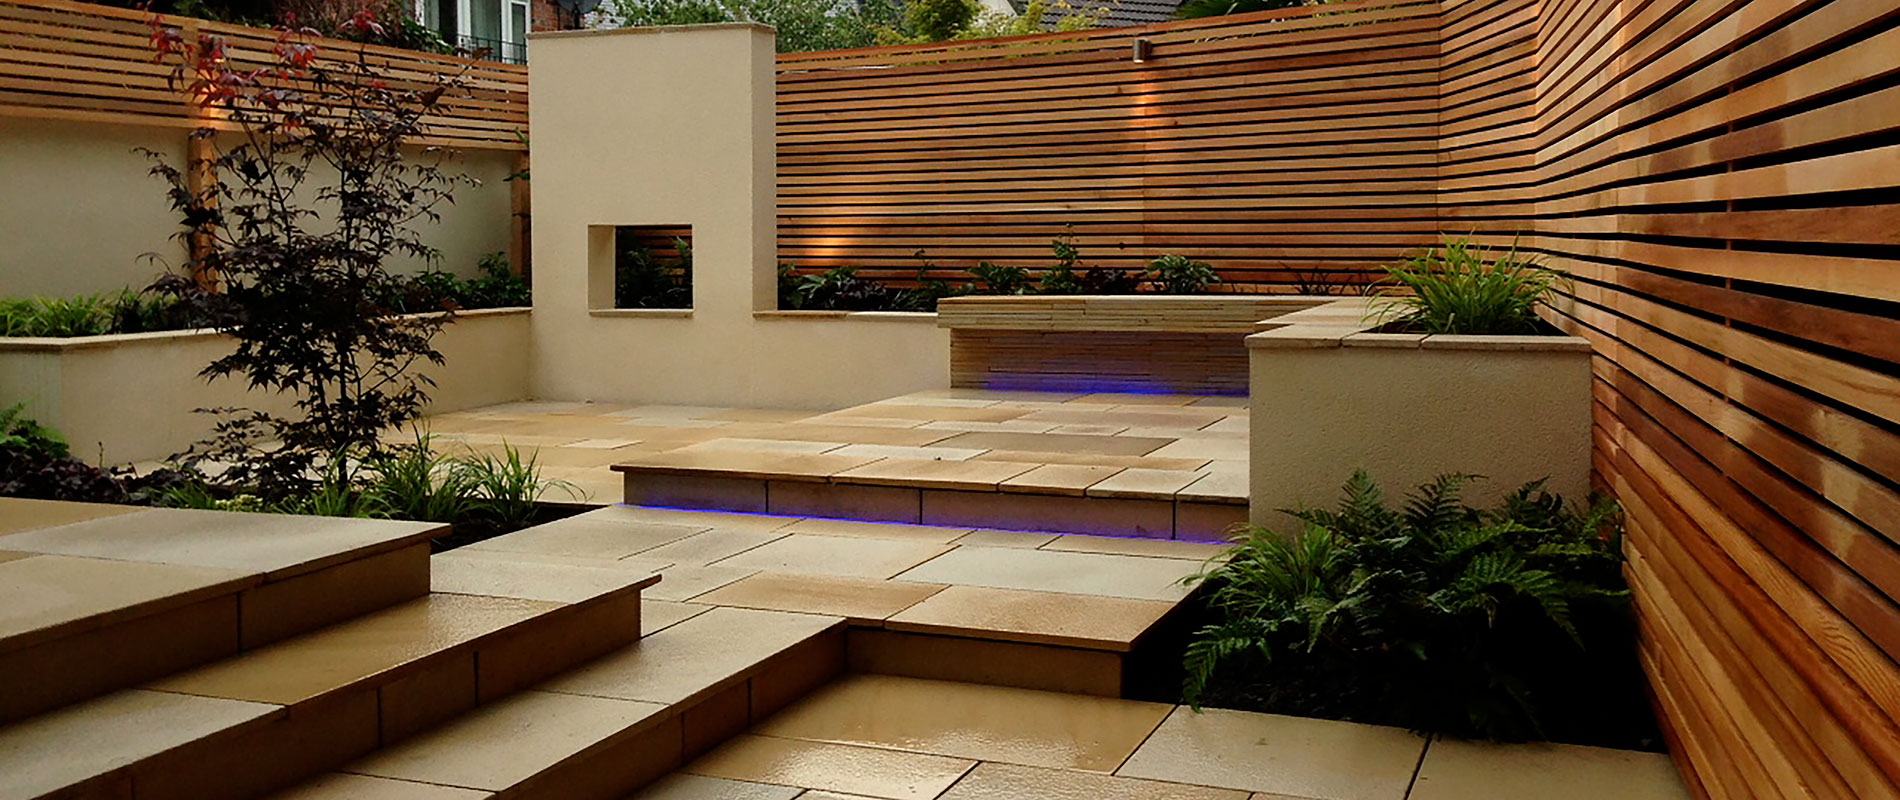 Small Garden Space Enhanced Visually With Horizontal Western Red Cedar Battens